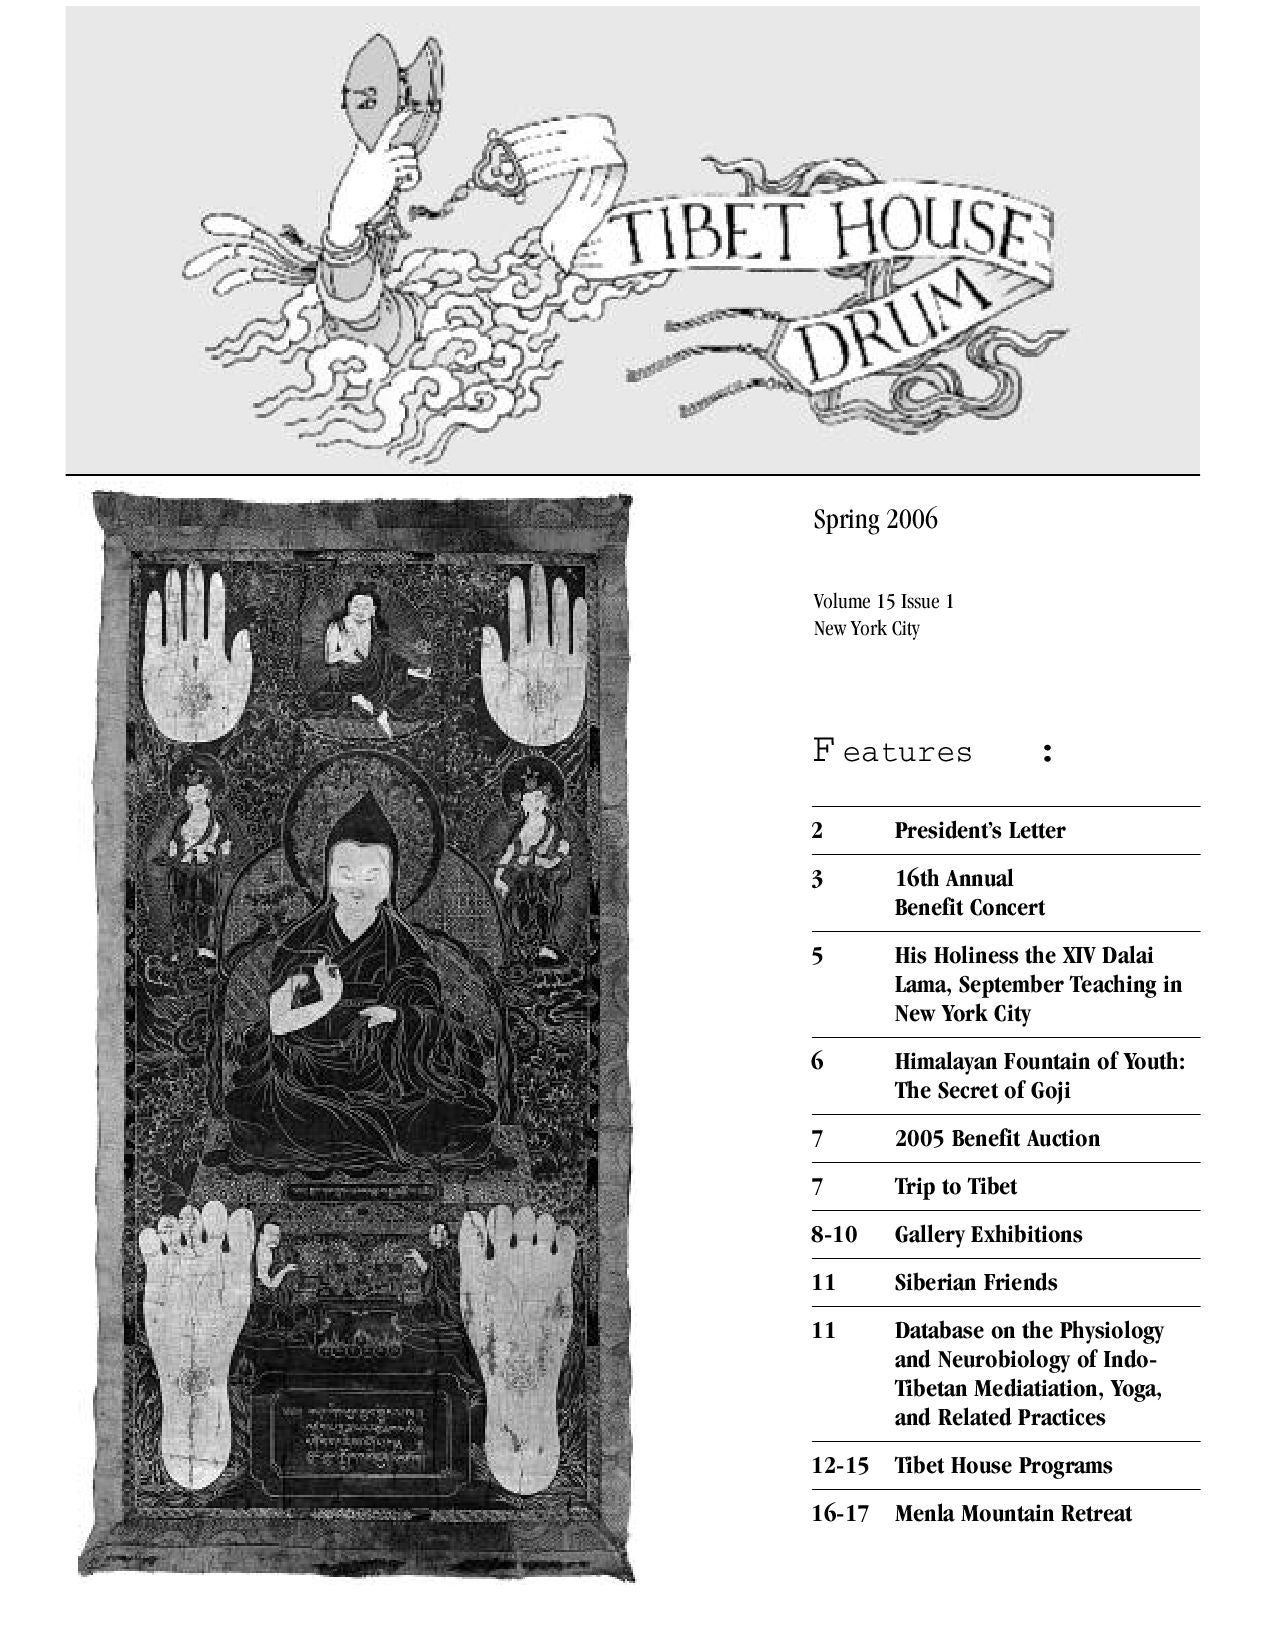 Spring 2006 Tibet House Drum by Tibet House US - issuu